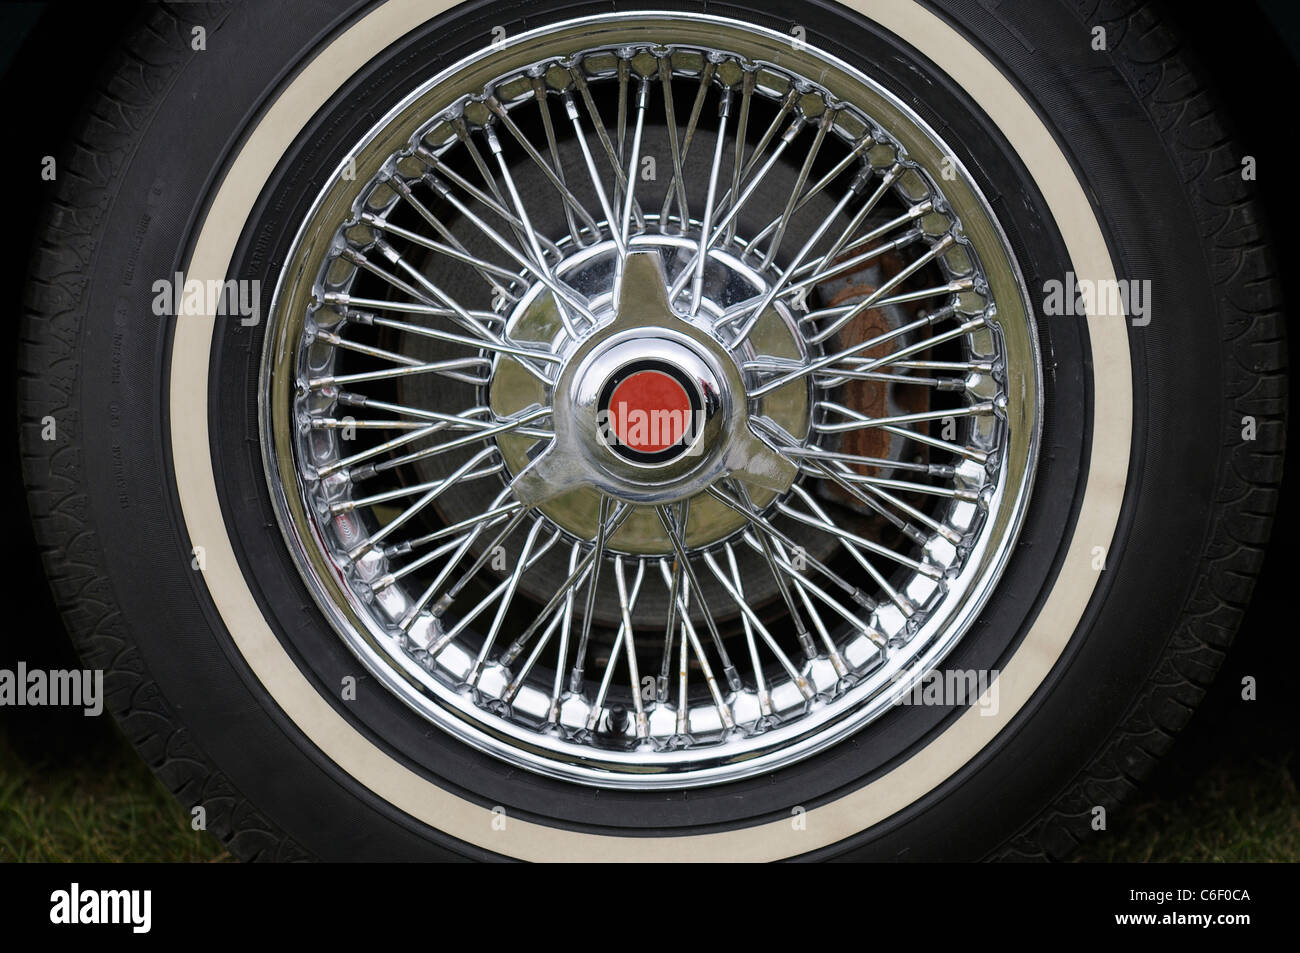 Sports Car Wheel - Stock Image